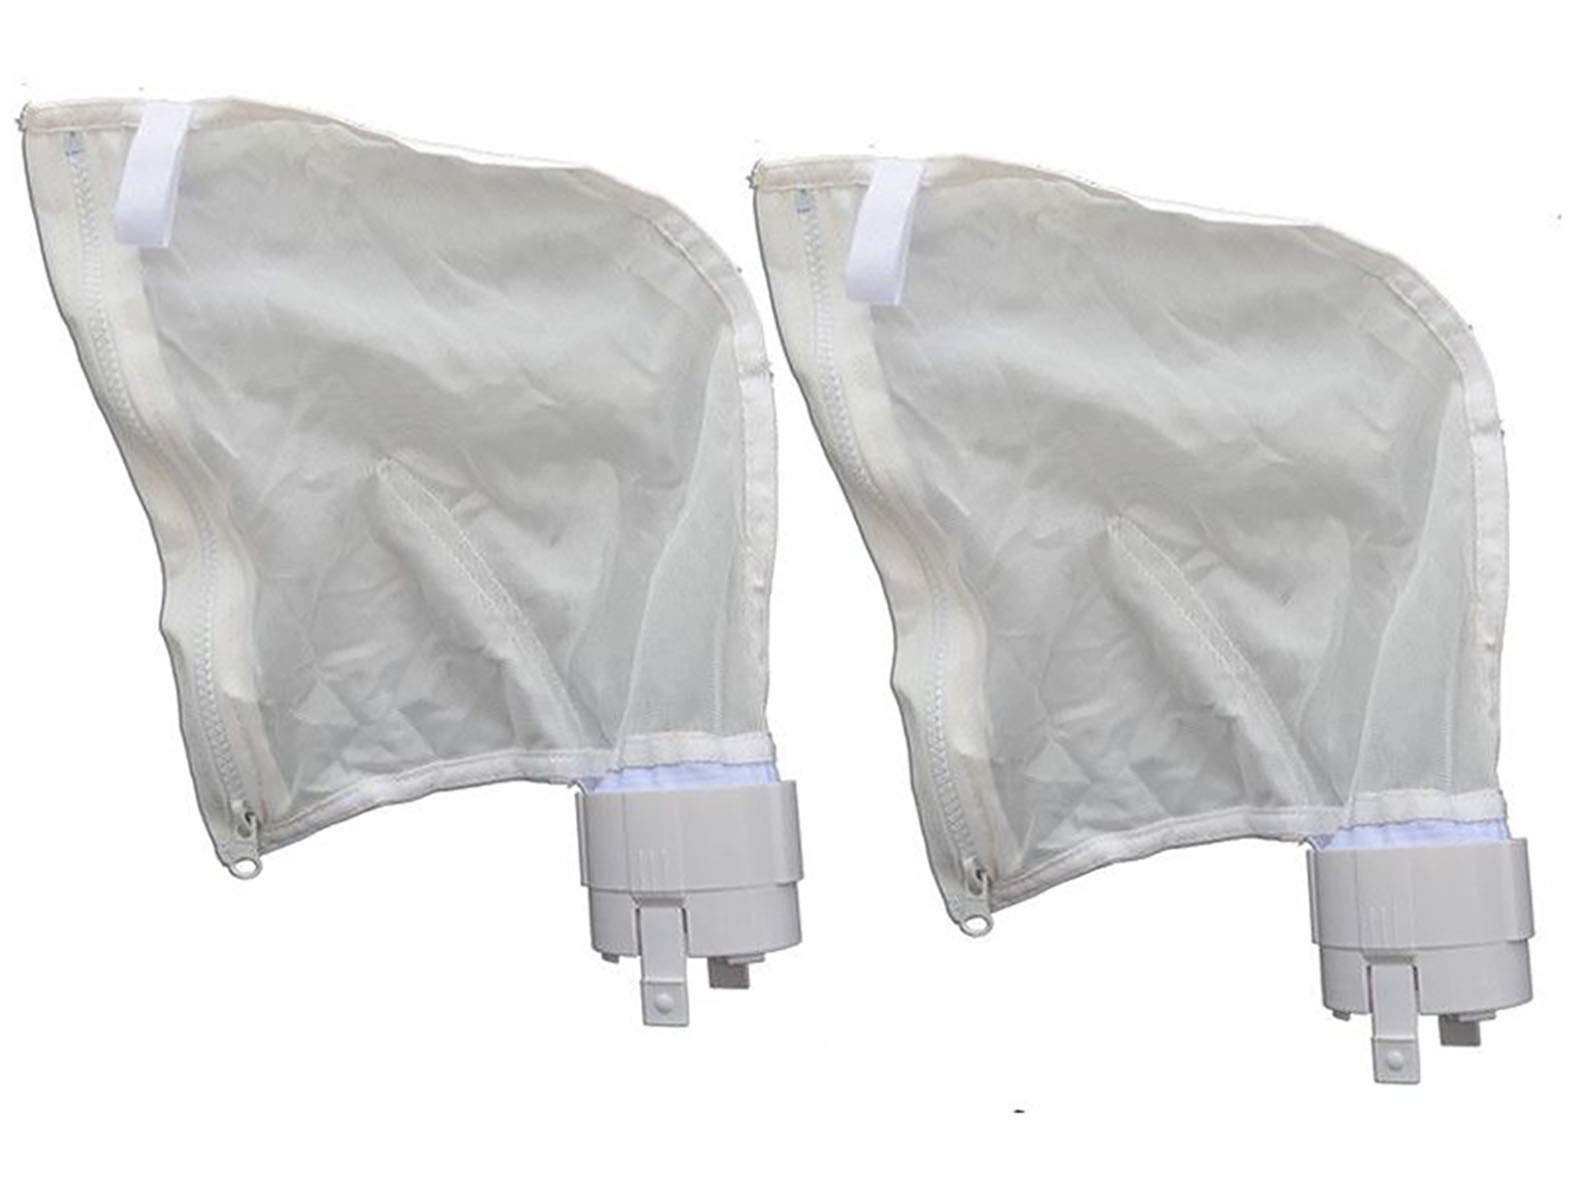 ATIE PoolSupplyTown Pool Cleaner All Purpose Zippered Bag Replacement Fits for 360, 380 All Purpose Bag 9-100-1021, 9-100-1014 (2 Pack) by ATIE